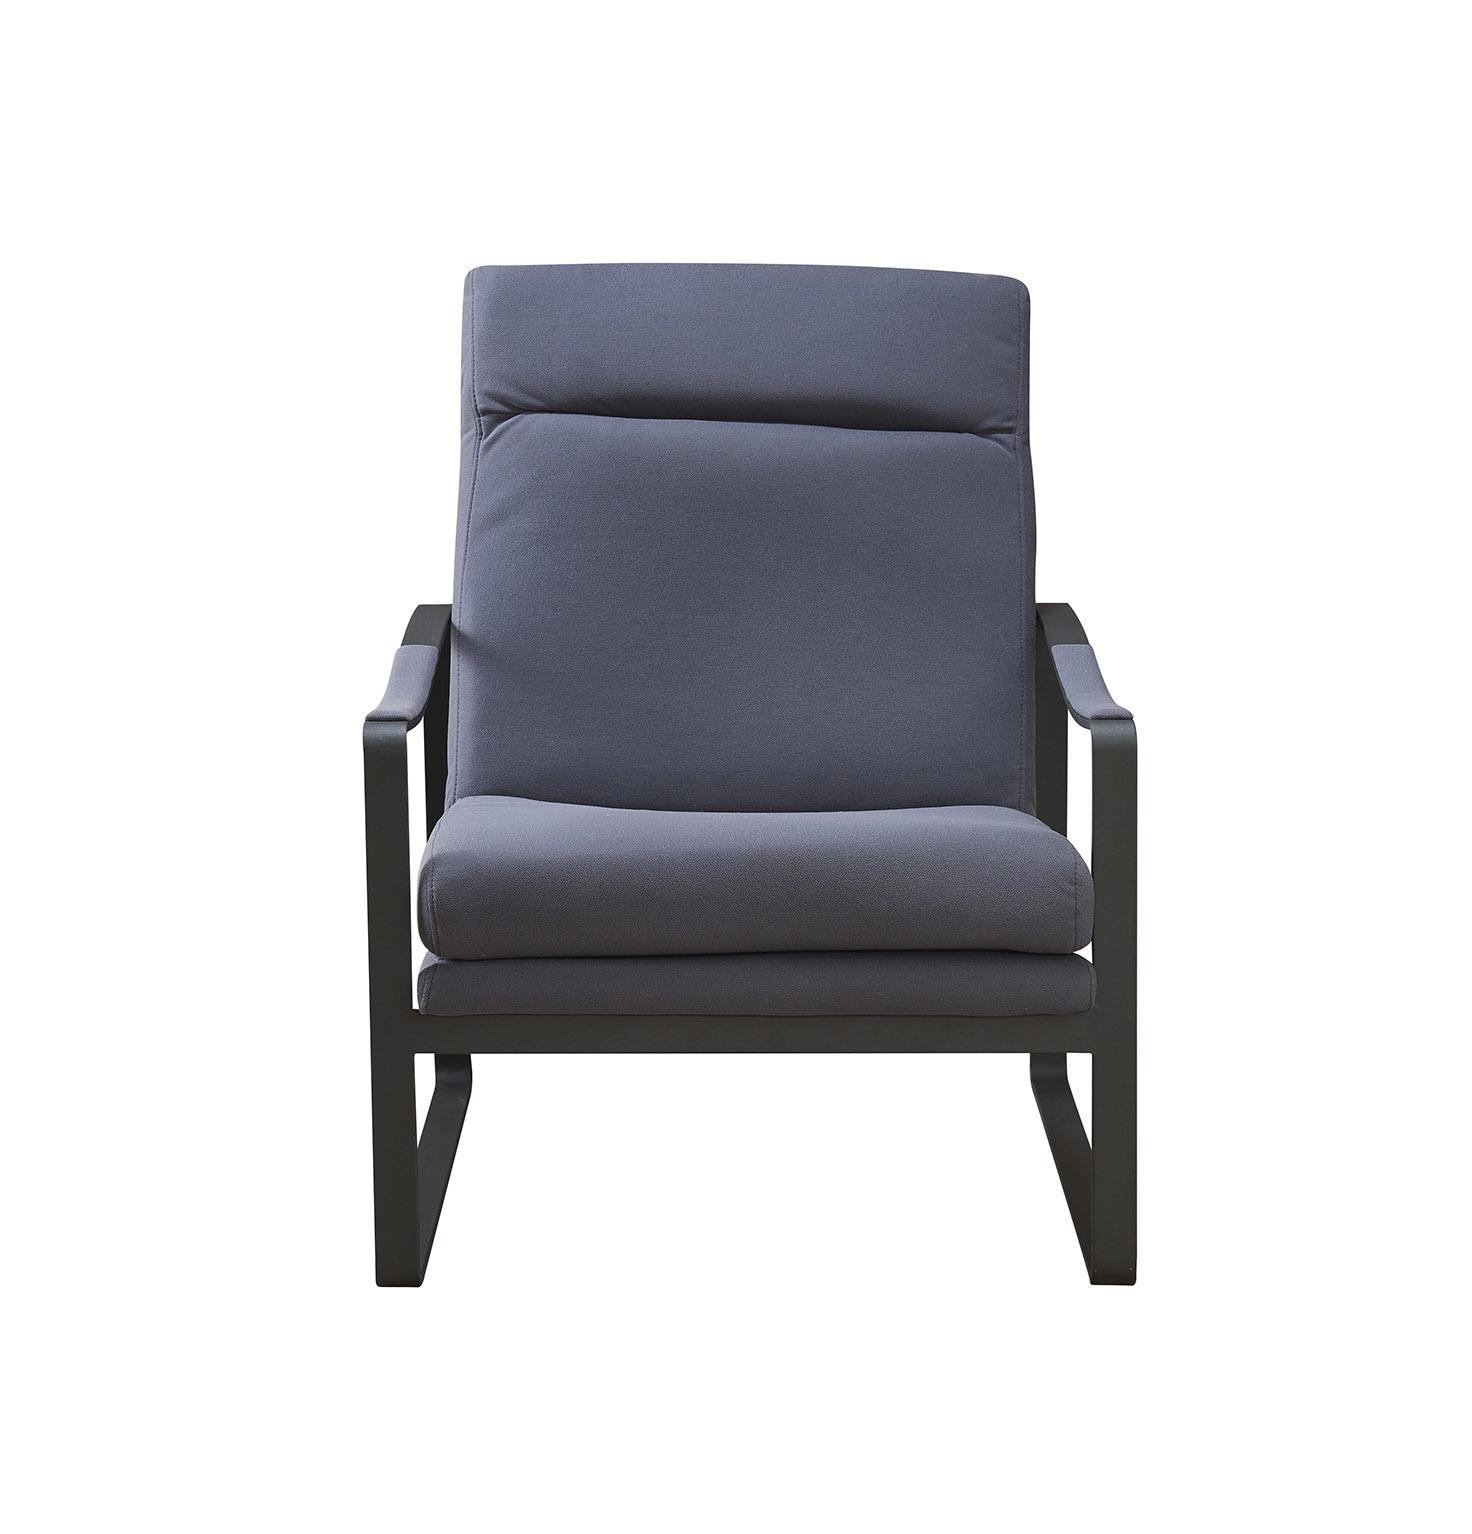 Hot Item Minimalist Style Living Room Leisure Chair Relax Lounge